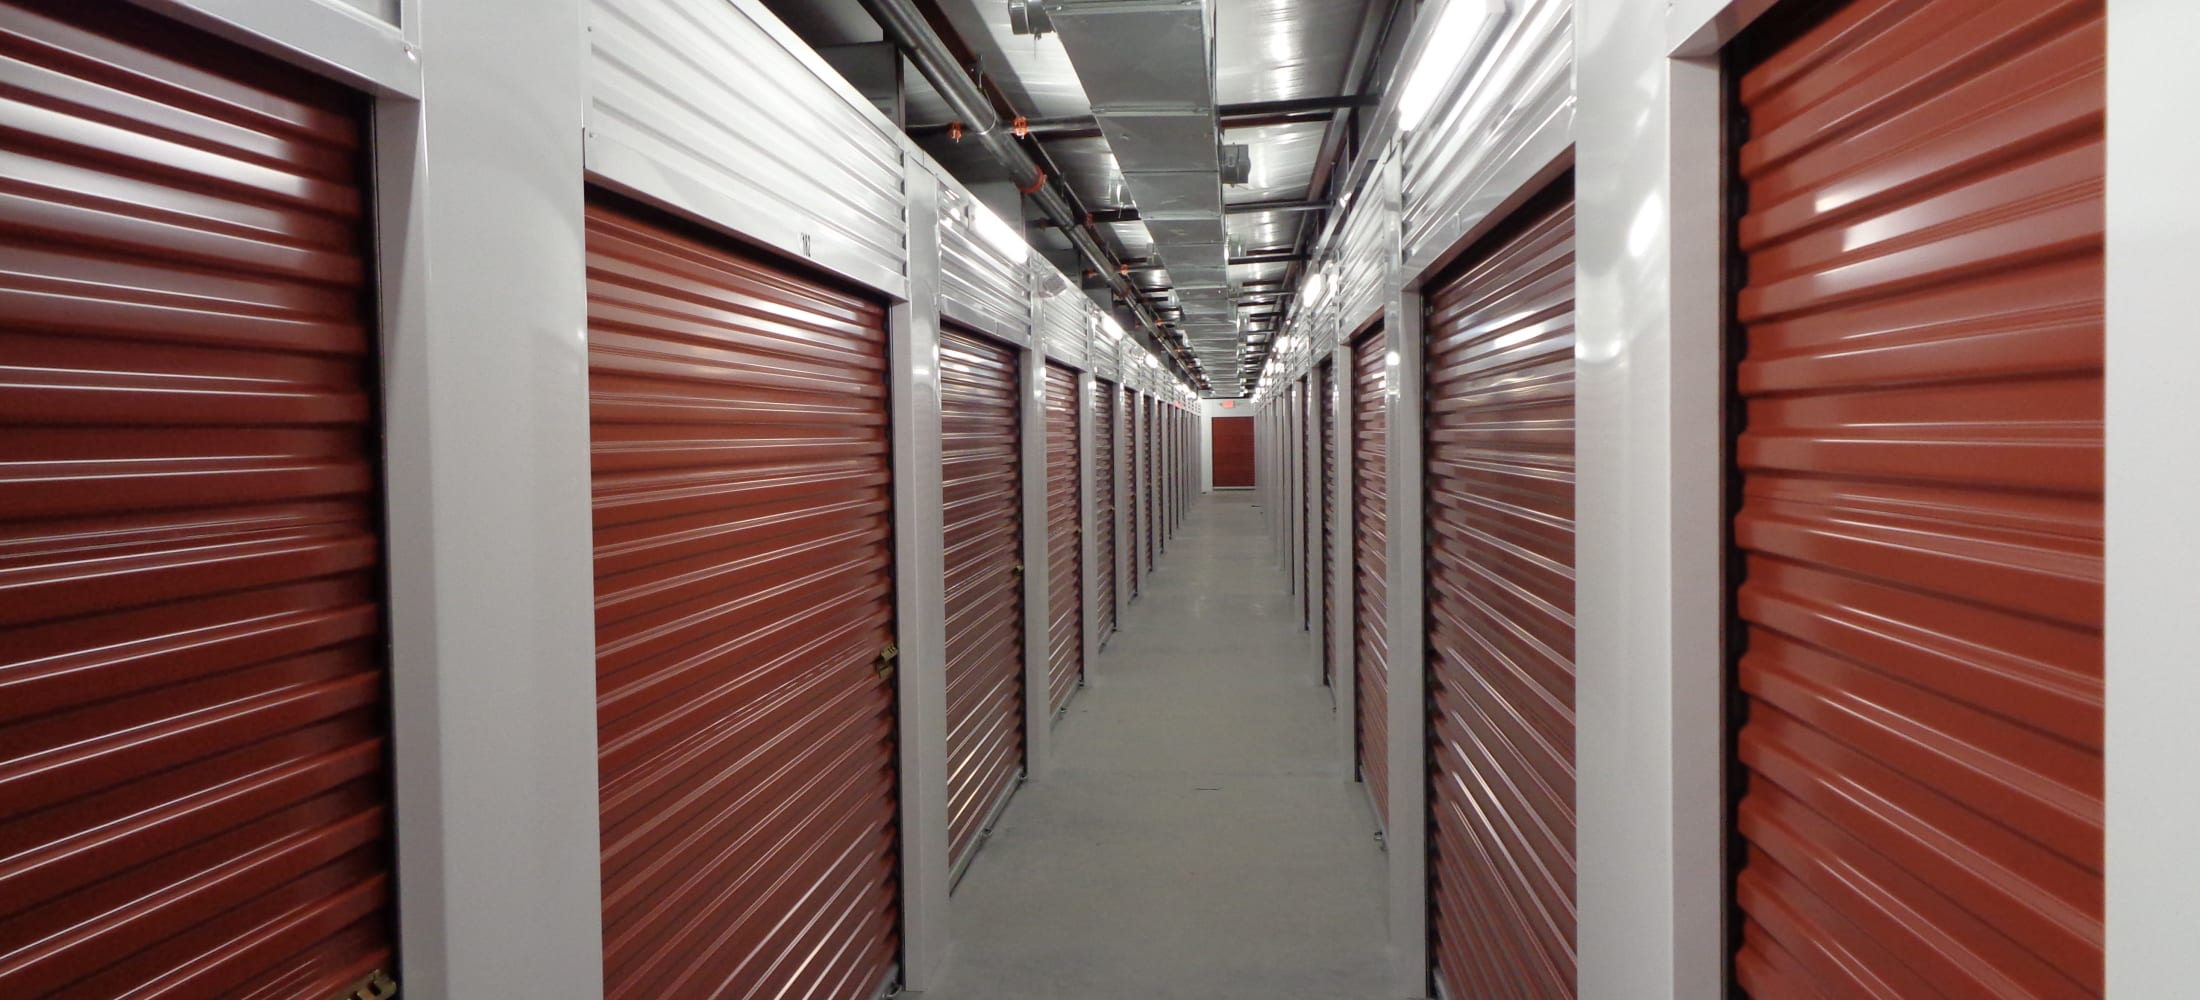 Interior units at Storage Authority Walters Rd in Houston, TX